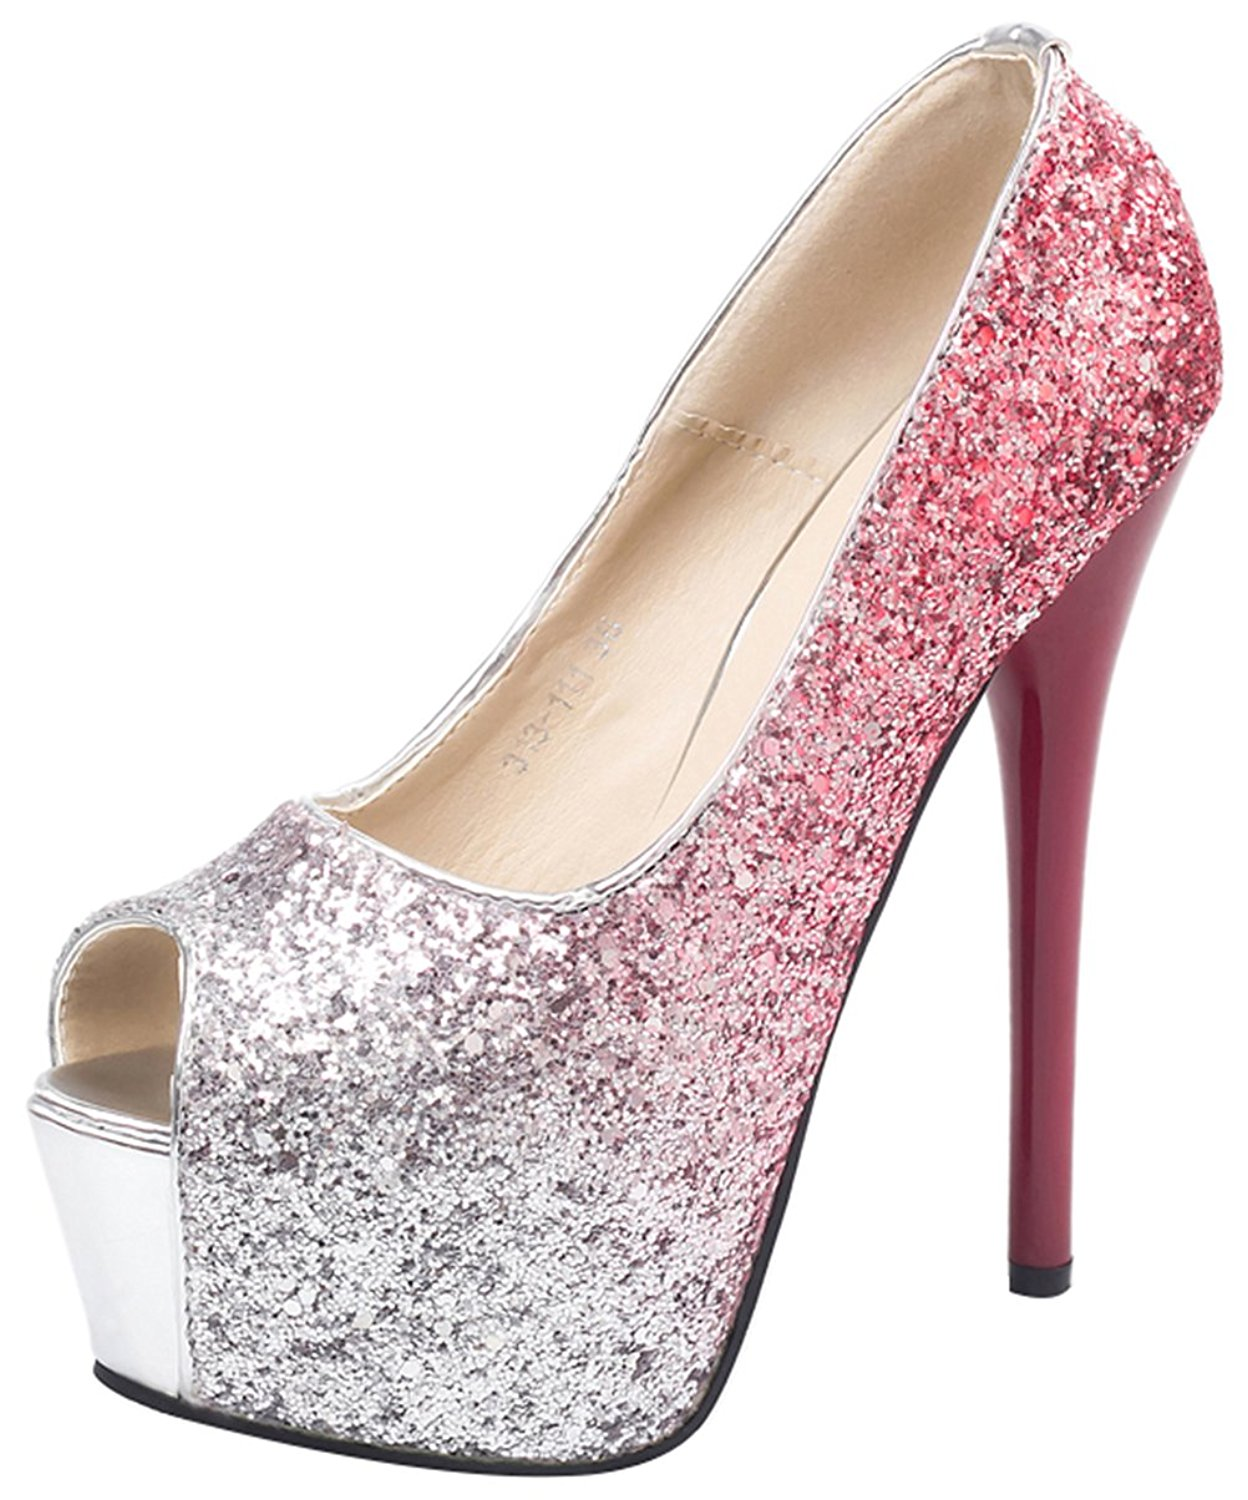 fbe303559a92 Get Quotations · Passionow Women s Dressy Gradient Bling Slip-ons Sequins  Super High Stilettos Peep Toe Platform Pumps